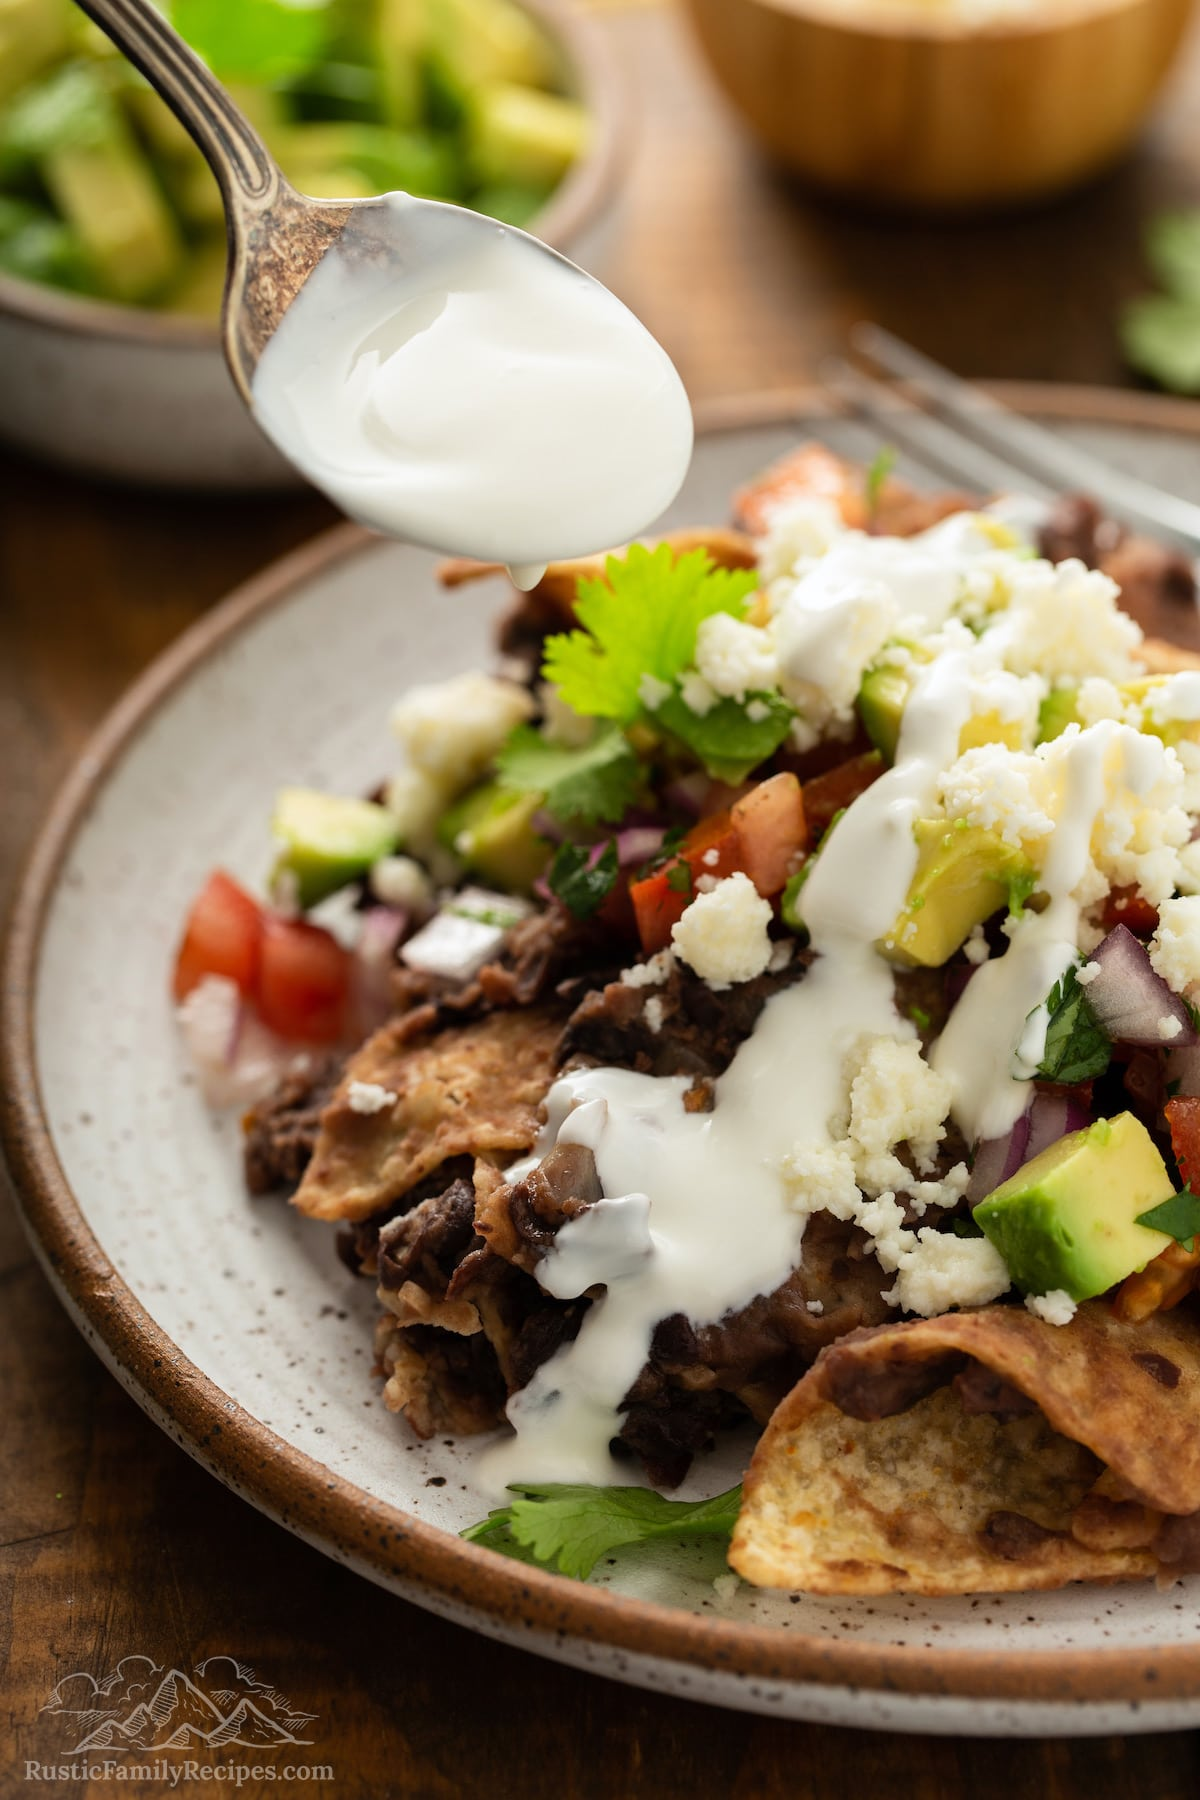 A spoon drizzling sour cream onto chilaquiles.